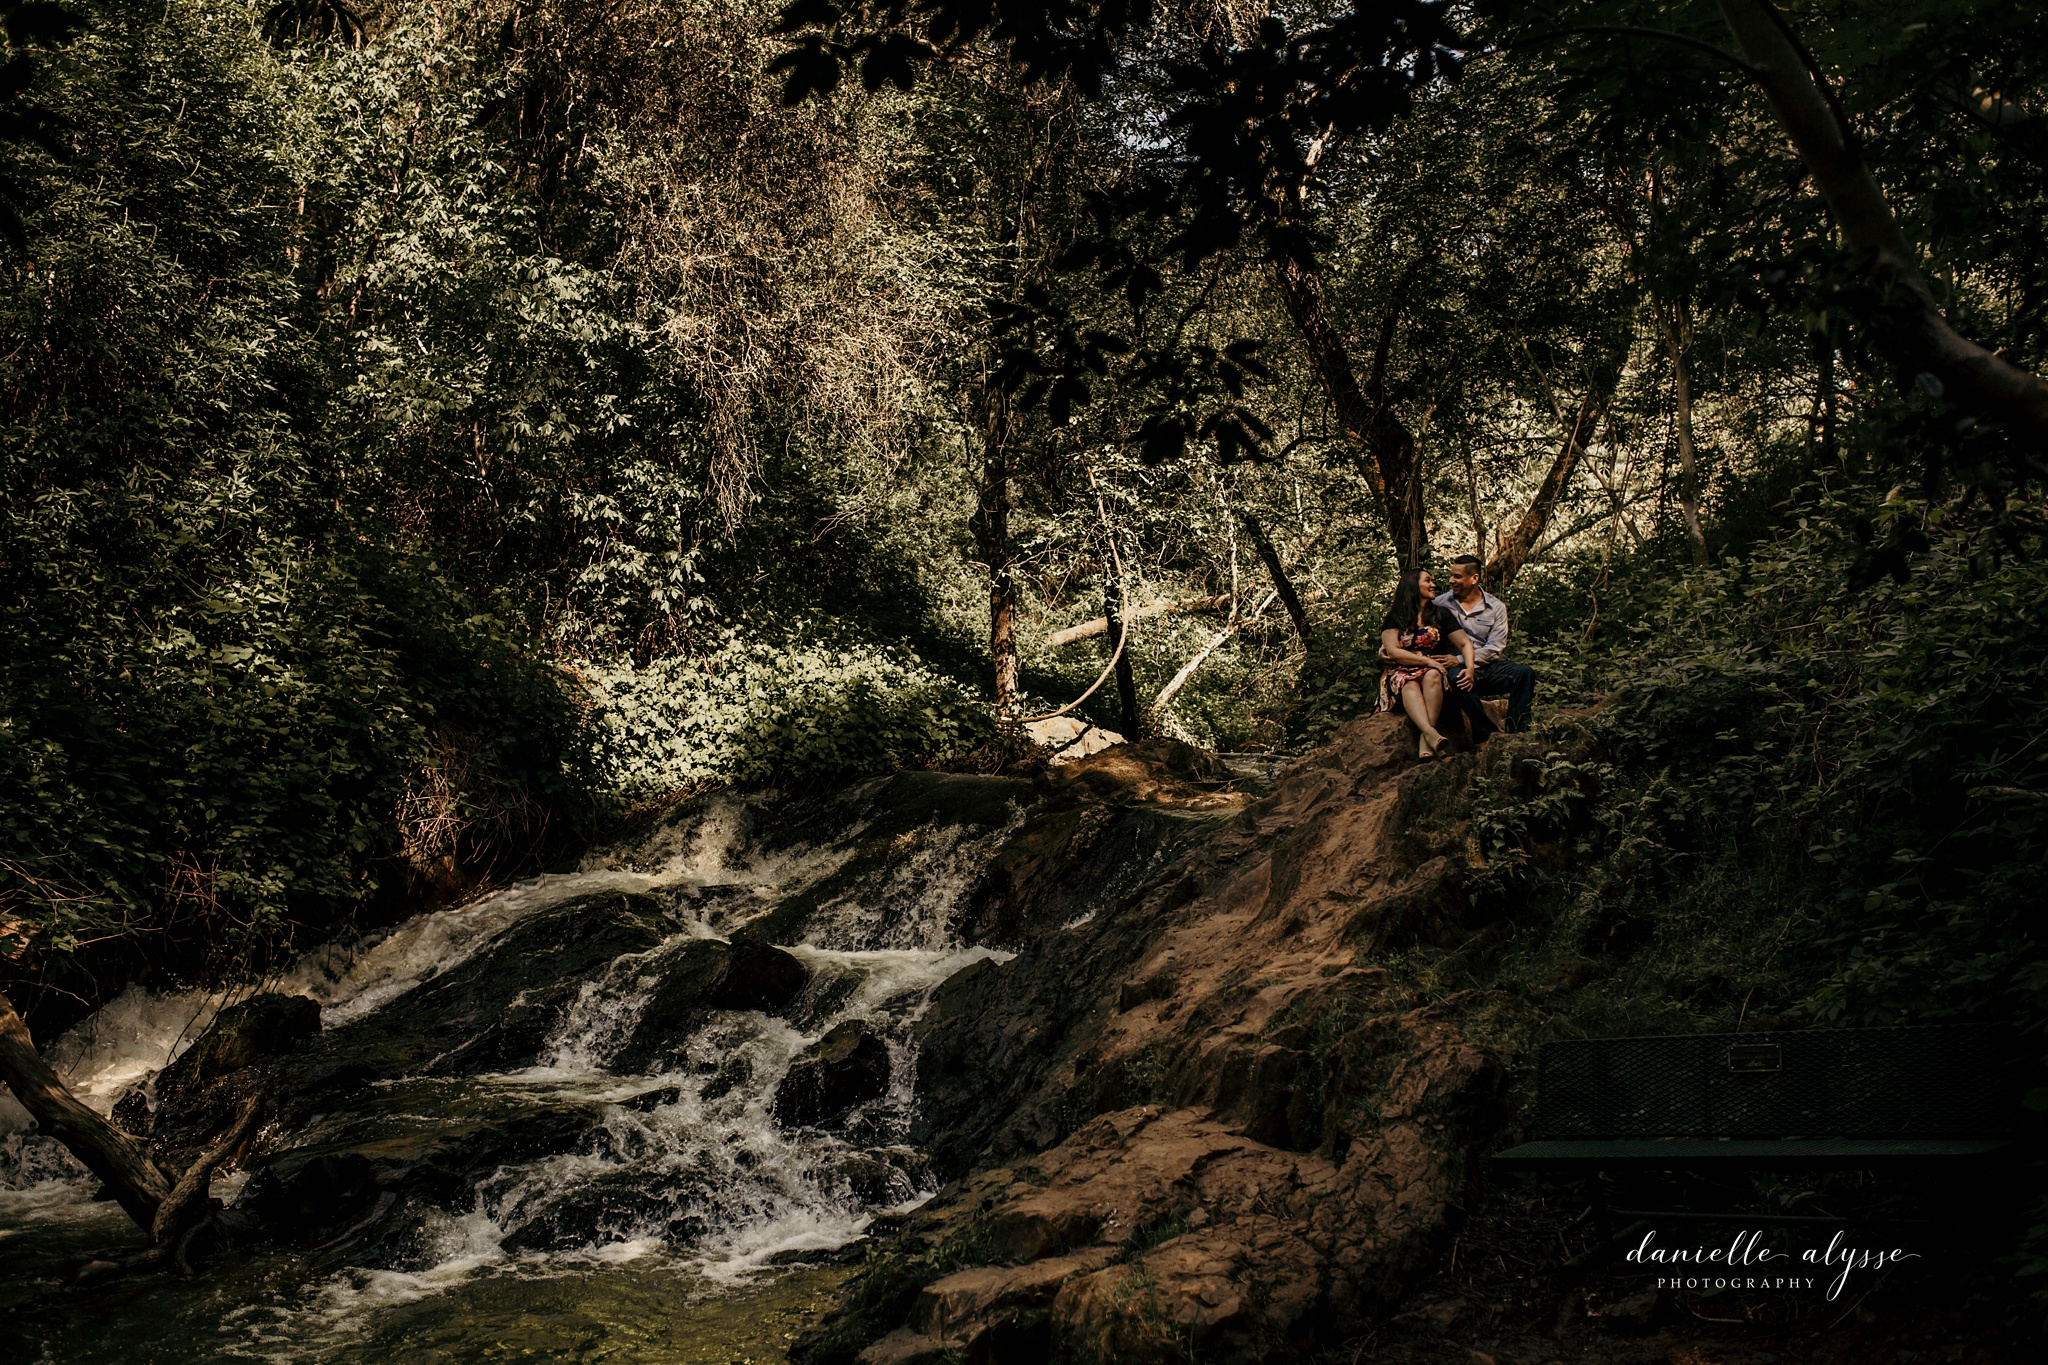 180425_engagement_monica_auburn_water_falls_auburn_danielle_alysse_photography_sacramento_photographer_blog_3_WEB.jpg